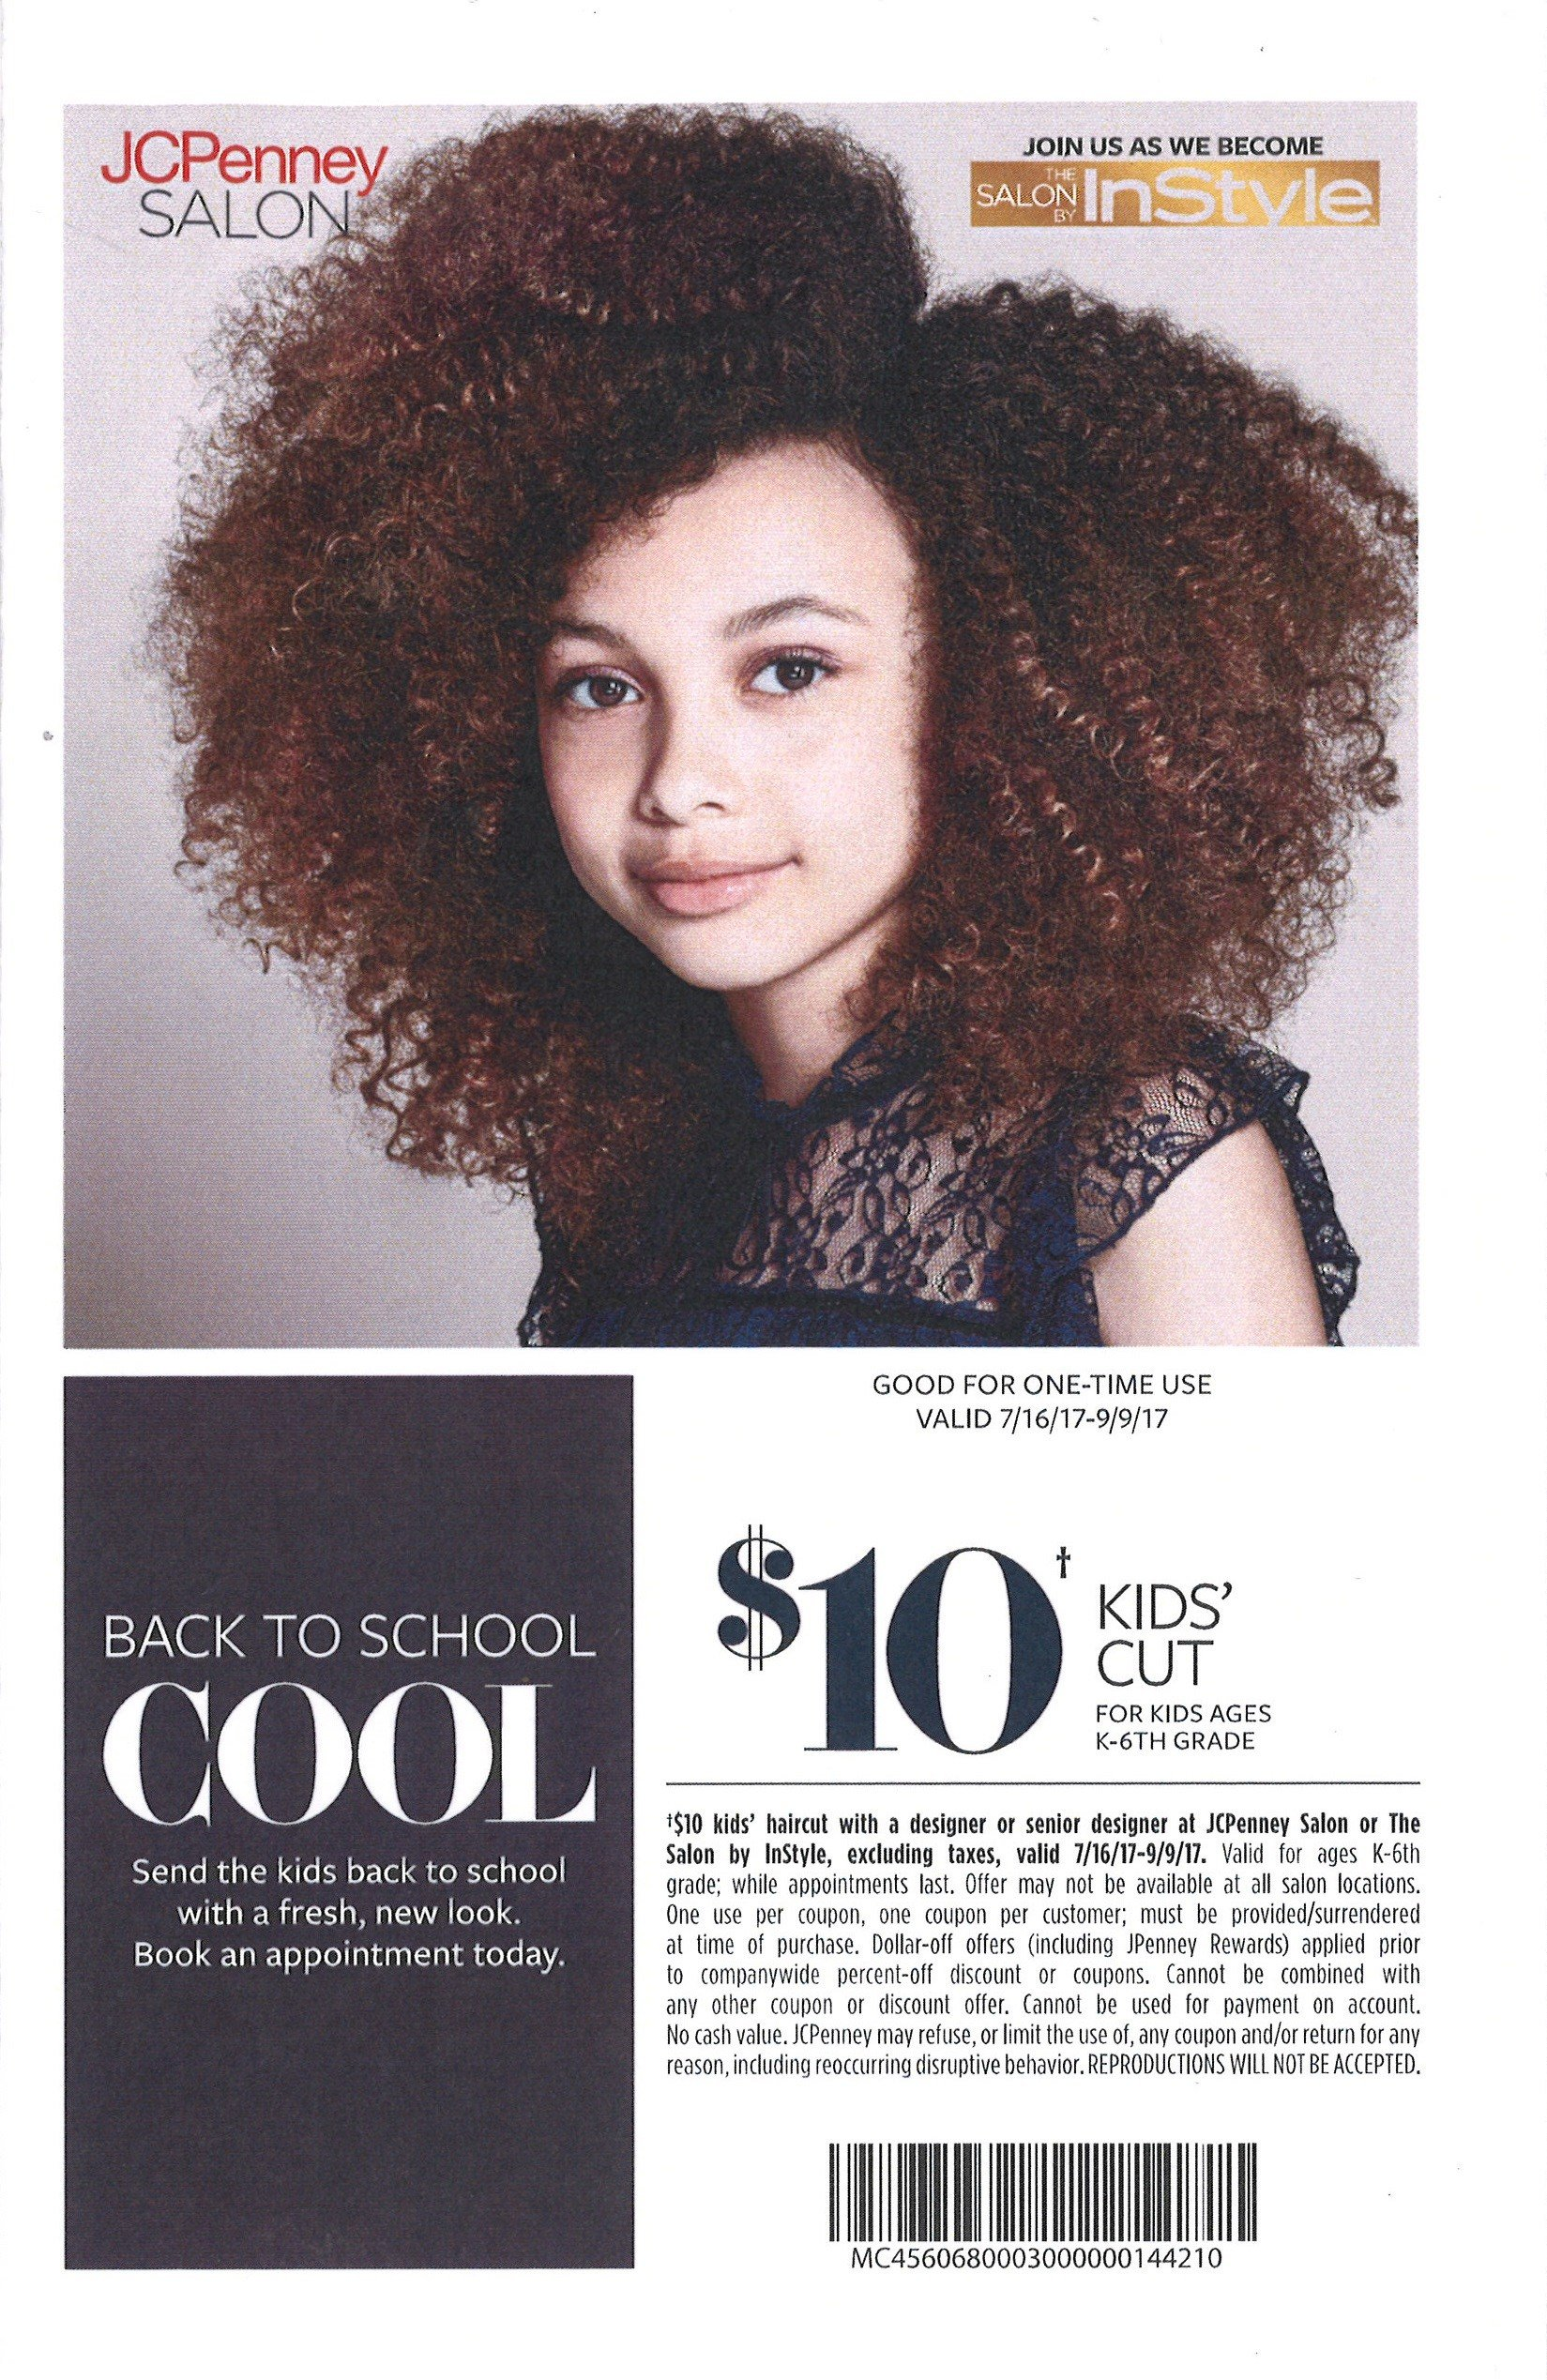 The Best Jcpenney Salon Back To School Haircuts 2016 Hair Pictures